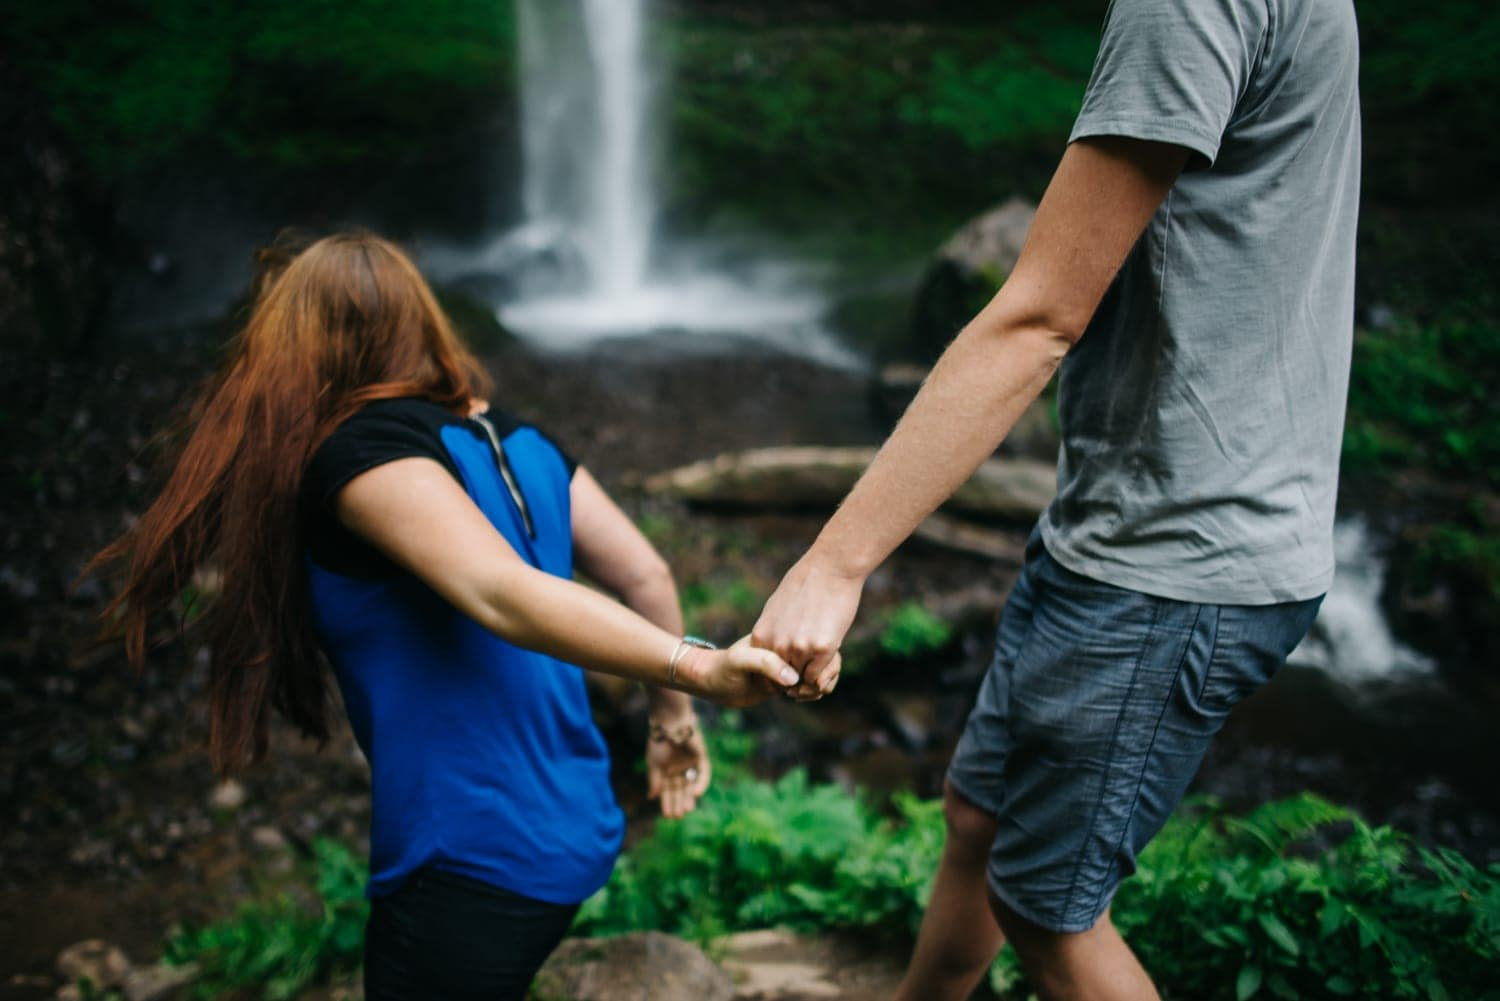 couple walking around near a waterfall holding hands